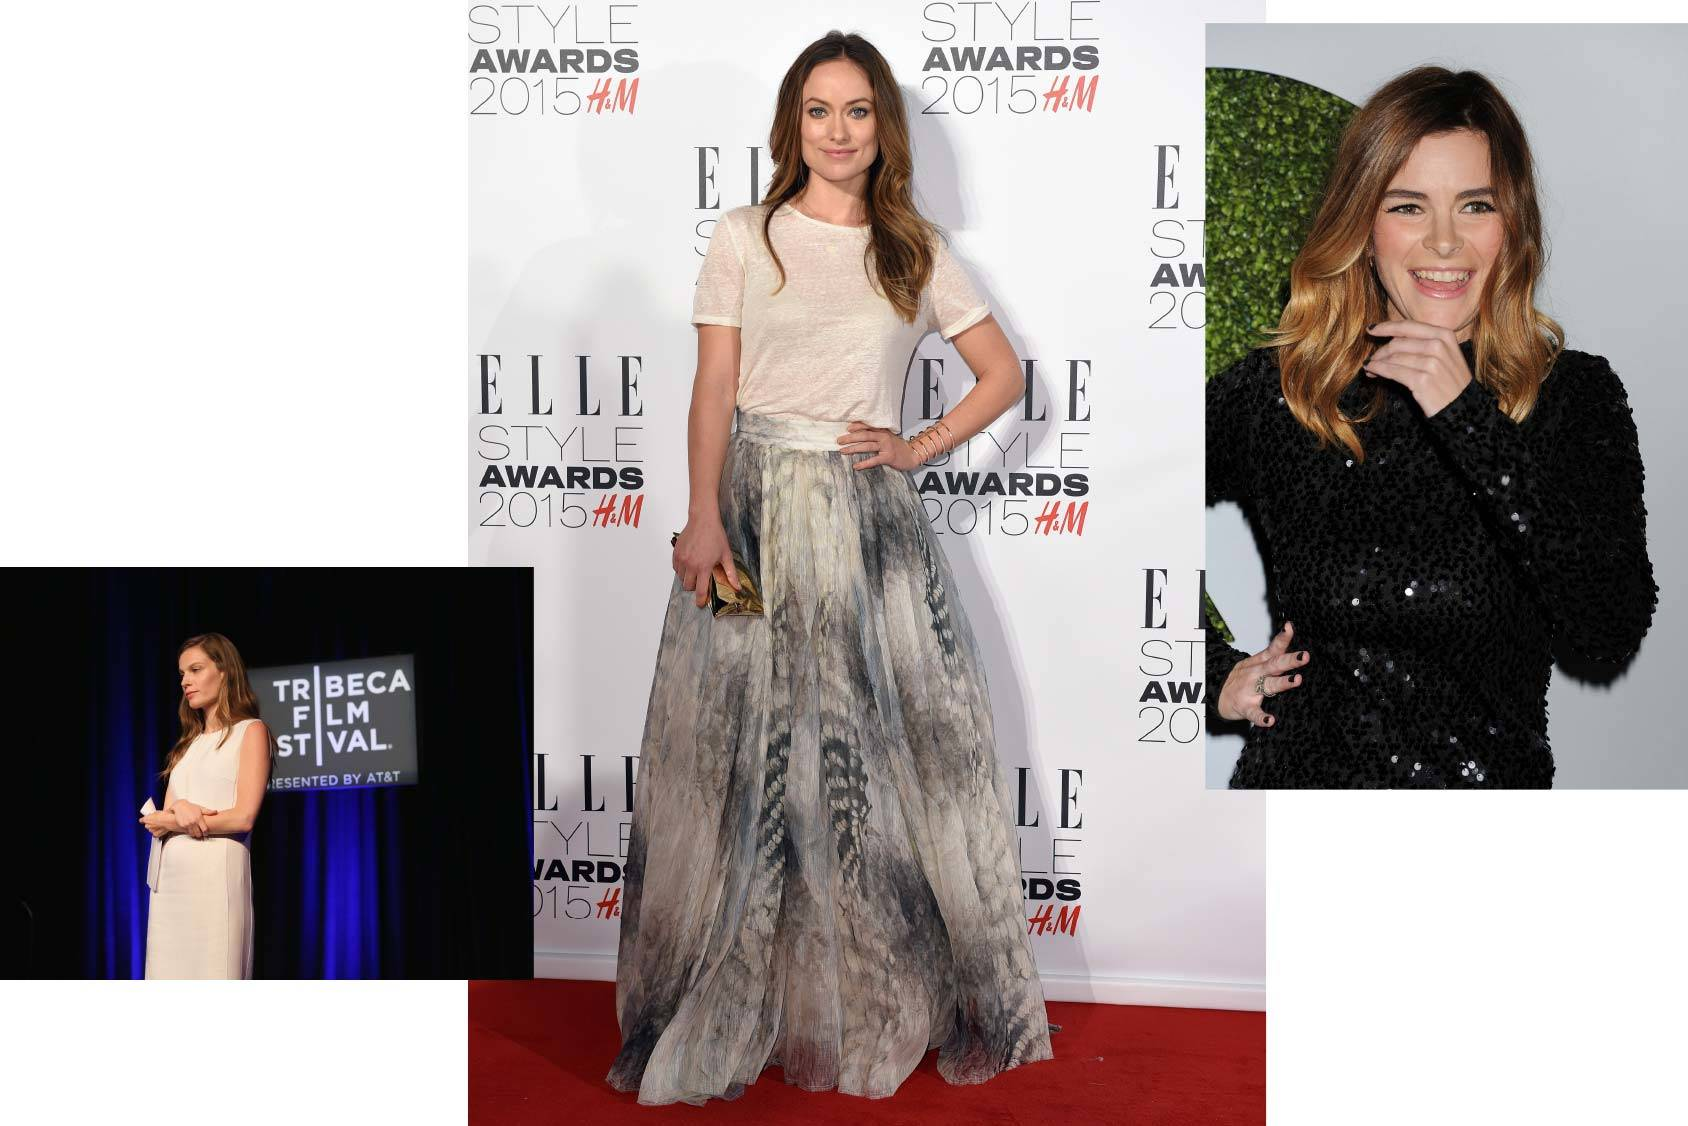 Olivia Wilde follows Tribeca Film Festival and Kelly Oxford, Getty Images.